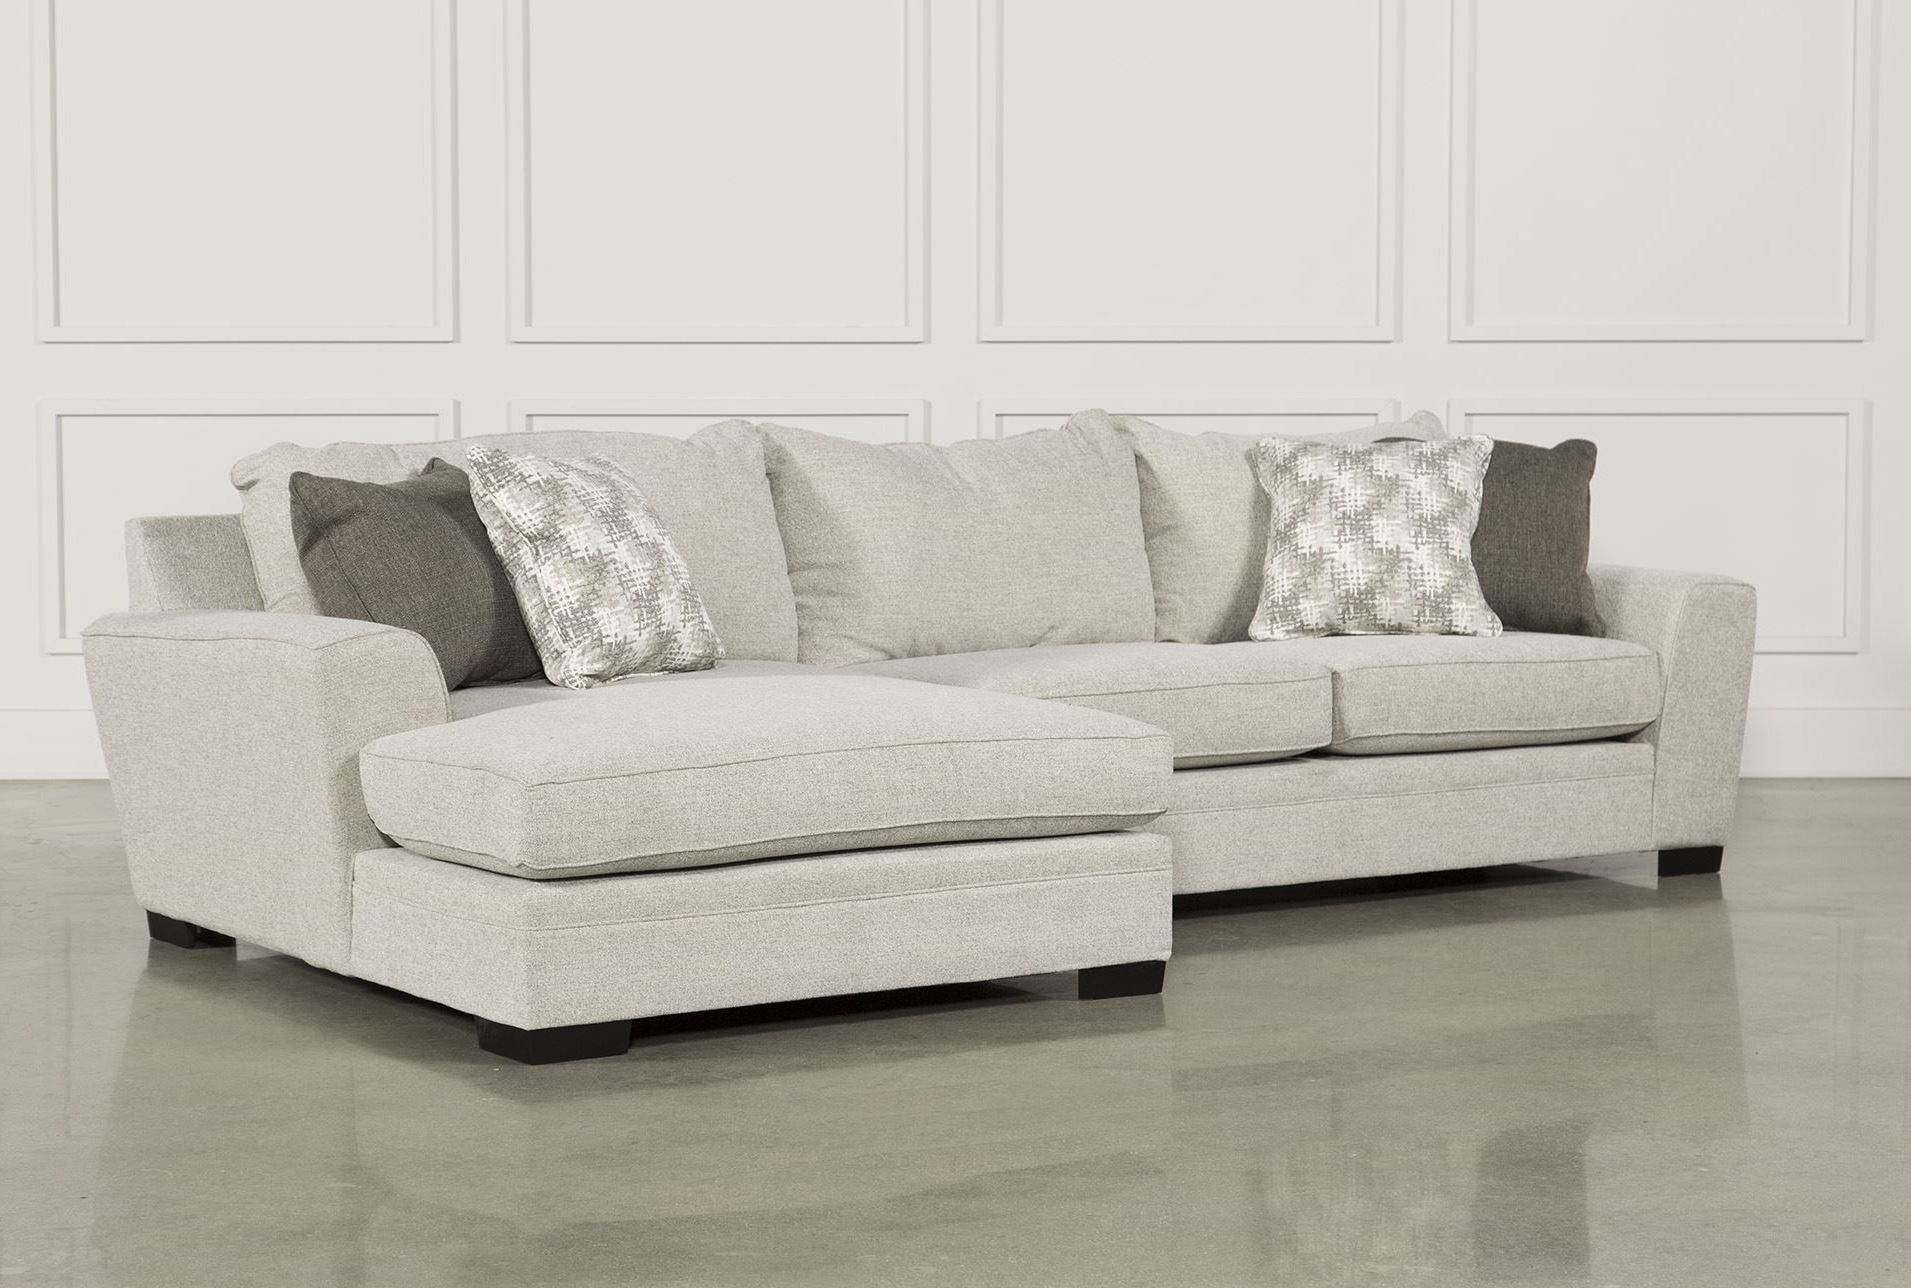 Delano 2 Piece Sectional W/raf Oversized Chaise, Beige, Sofas Intended For Recent Delano Smoke 3 Piece Sectionals (View 6 of 20)